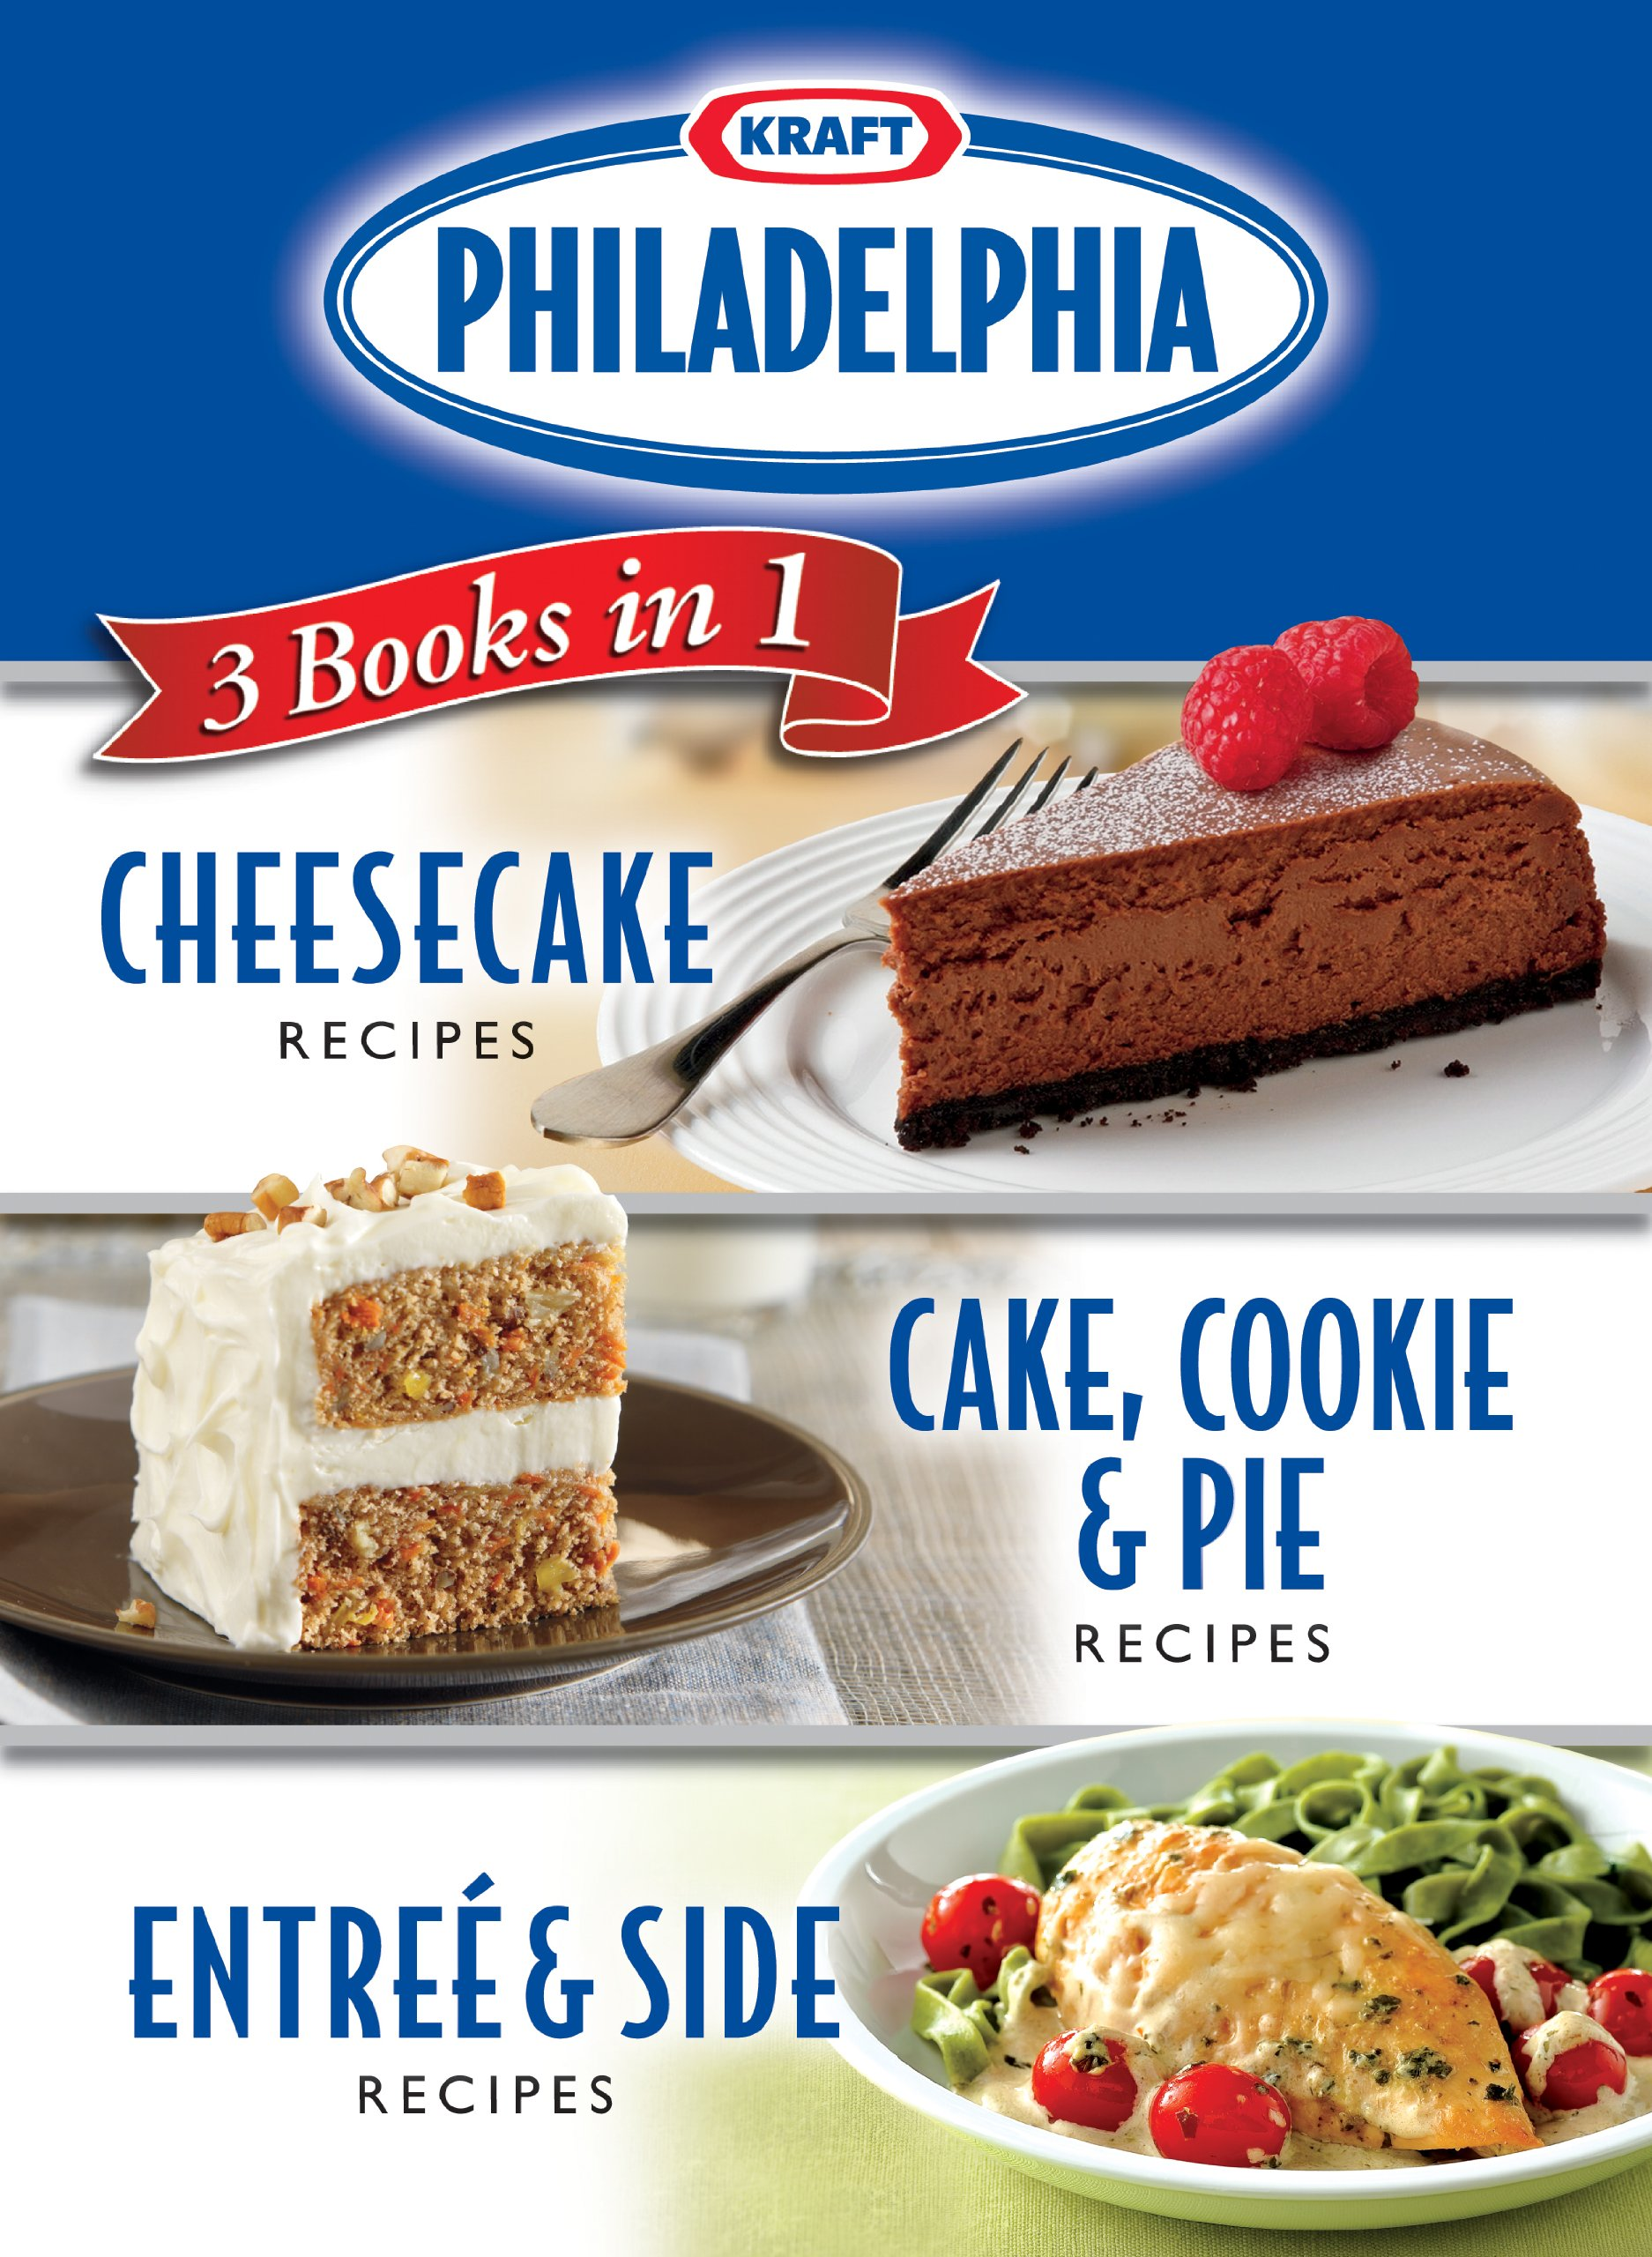 How to cook and what to eat Philadelphia cheese